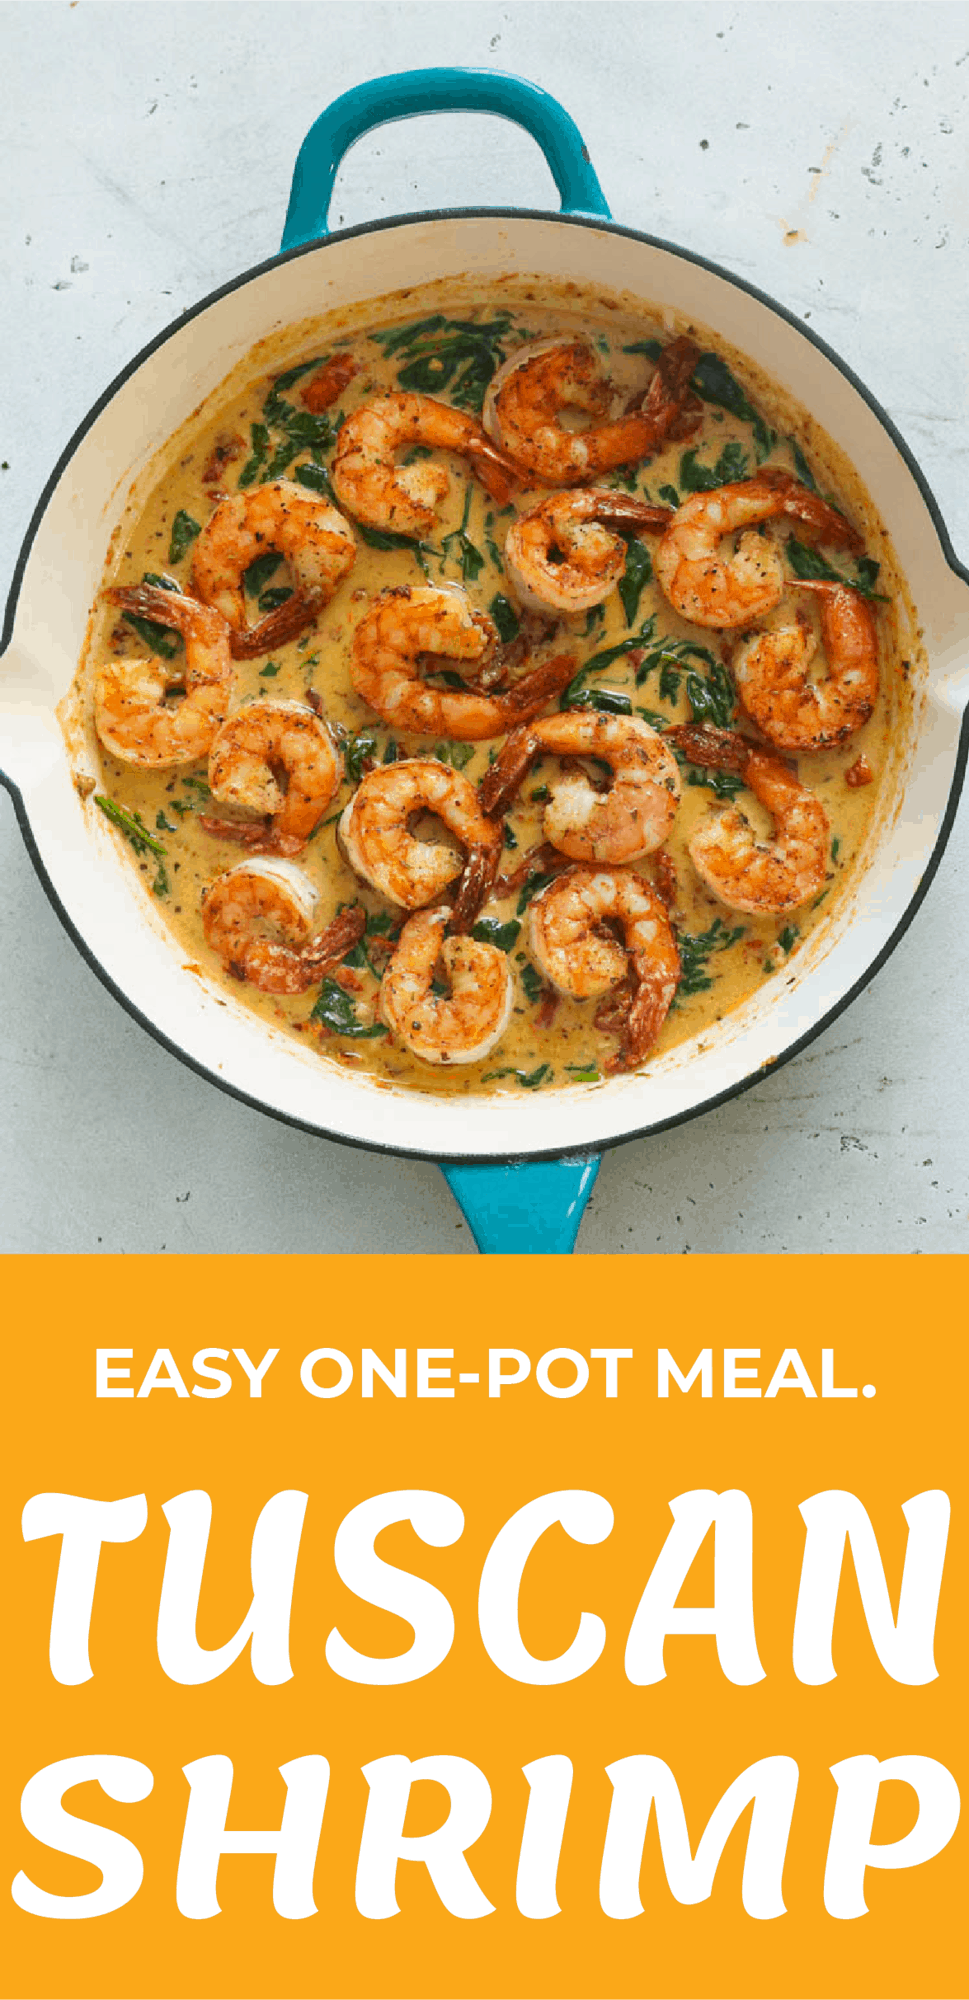 Easy One-Pot Meal Tuscan Shrimp